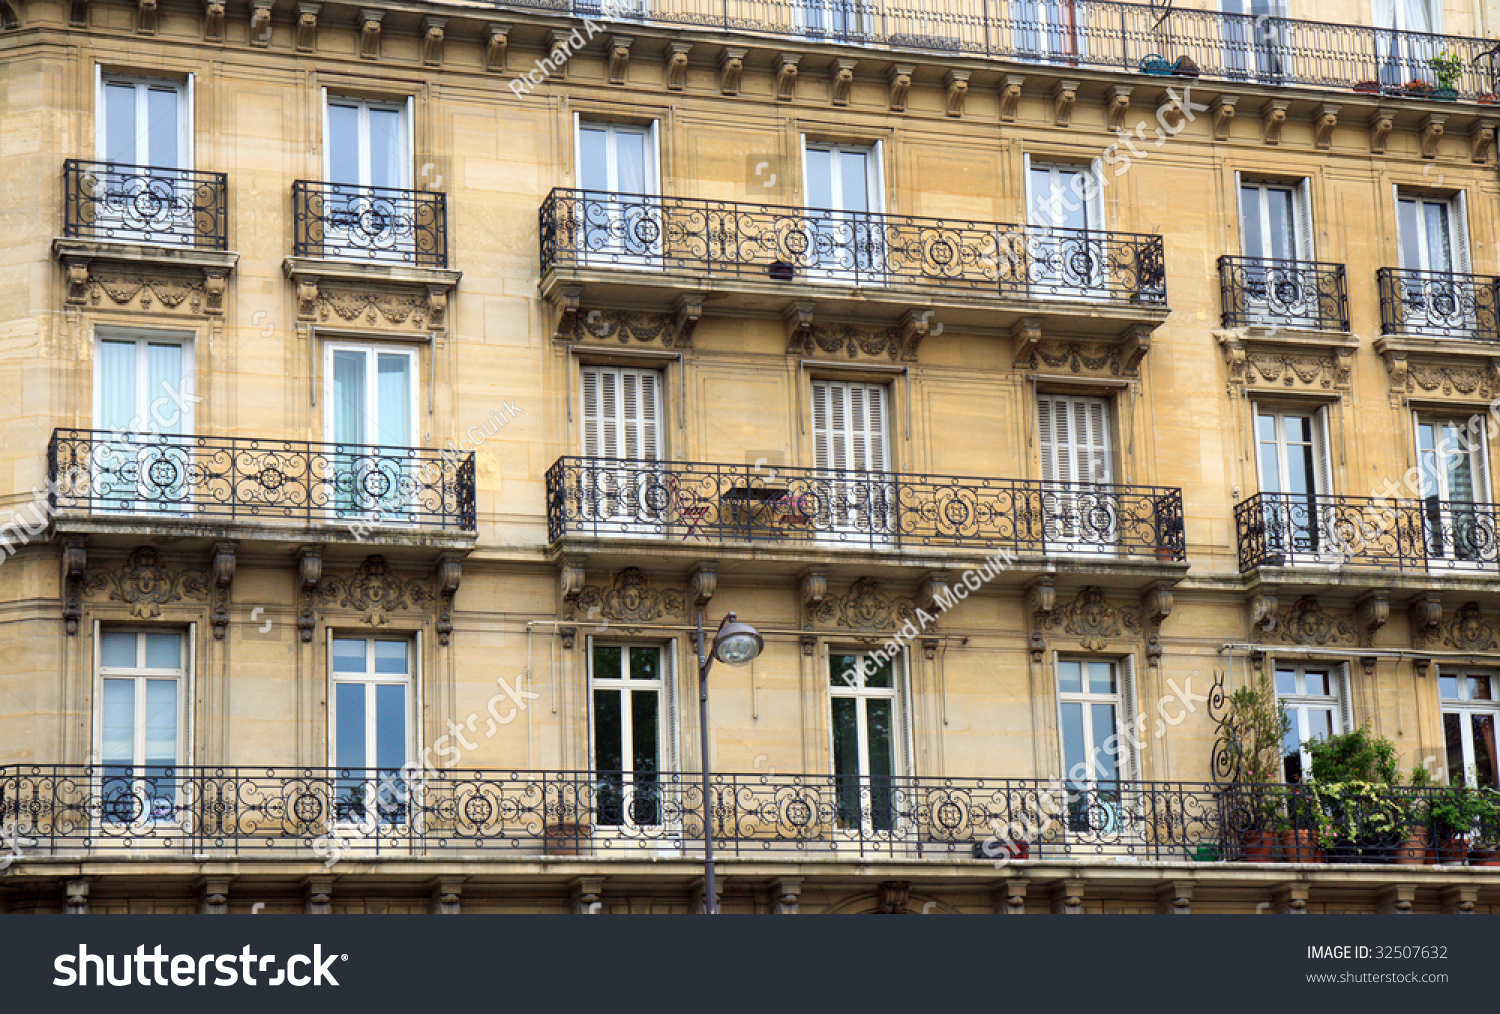 Color DSLR Image Apartment Building Paris Stock Photo (Royalty Free ...